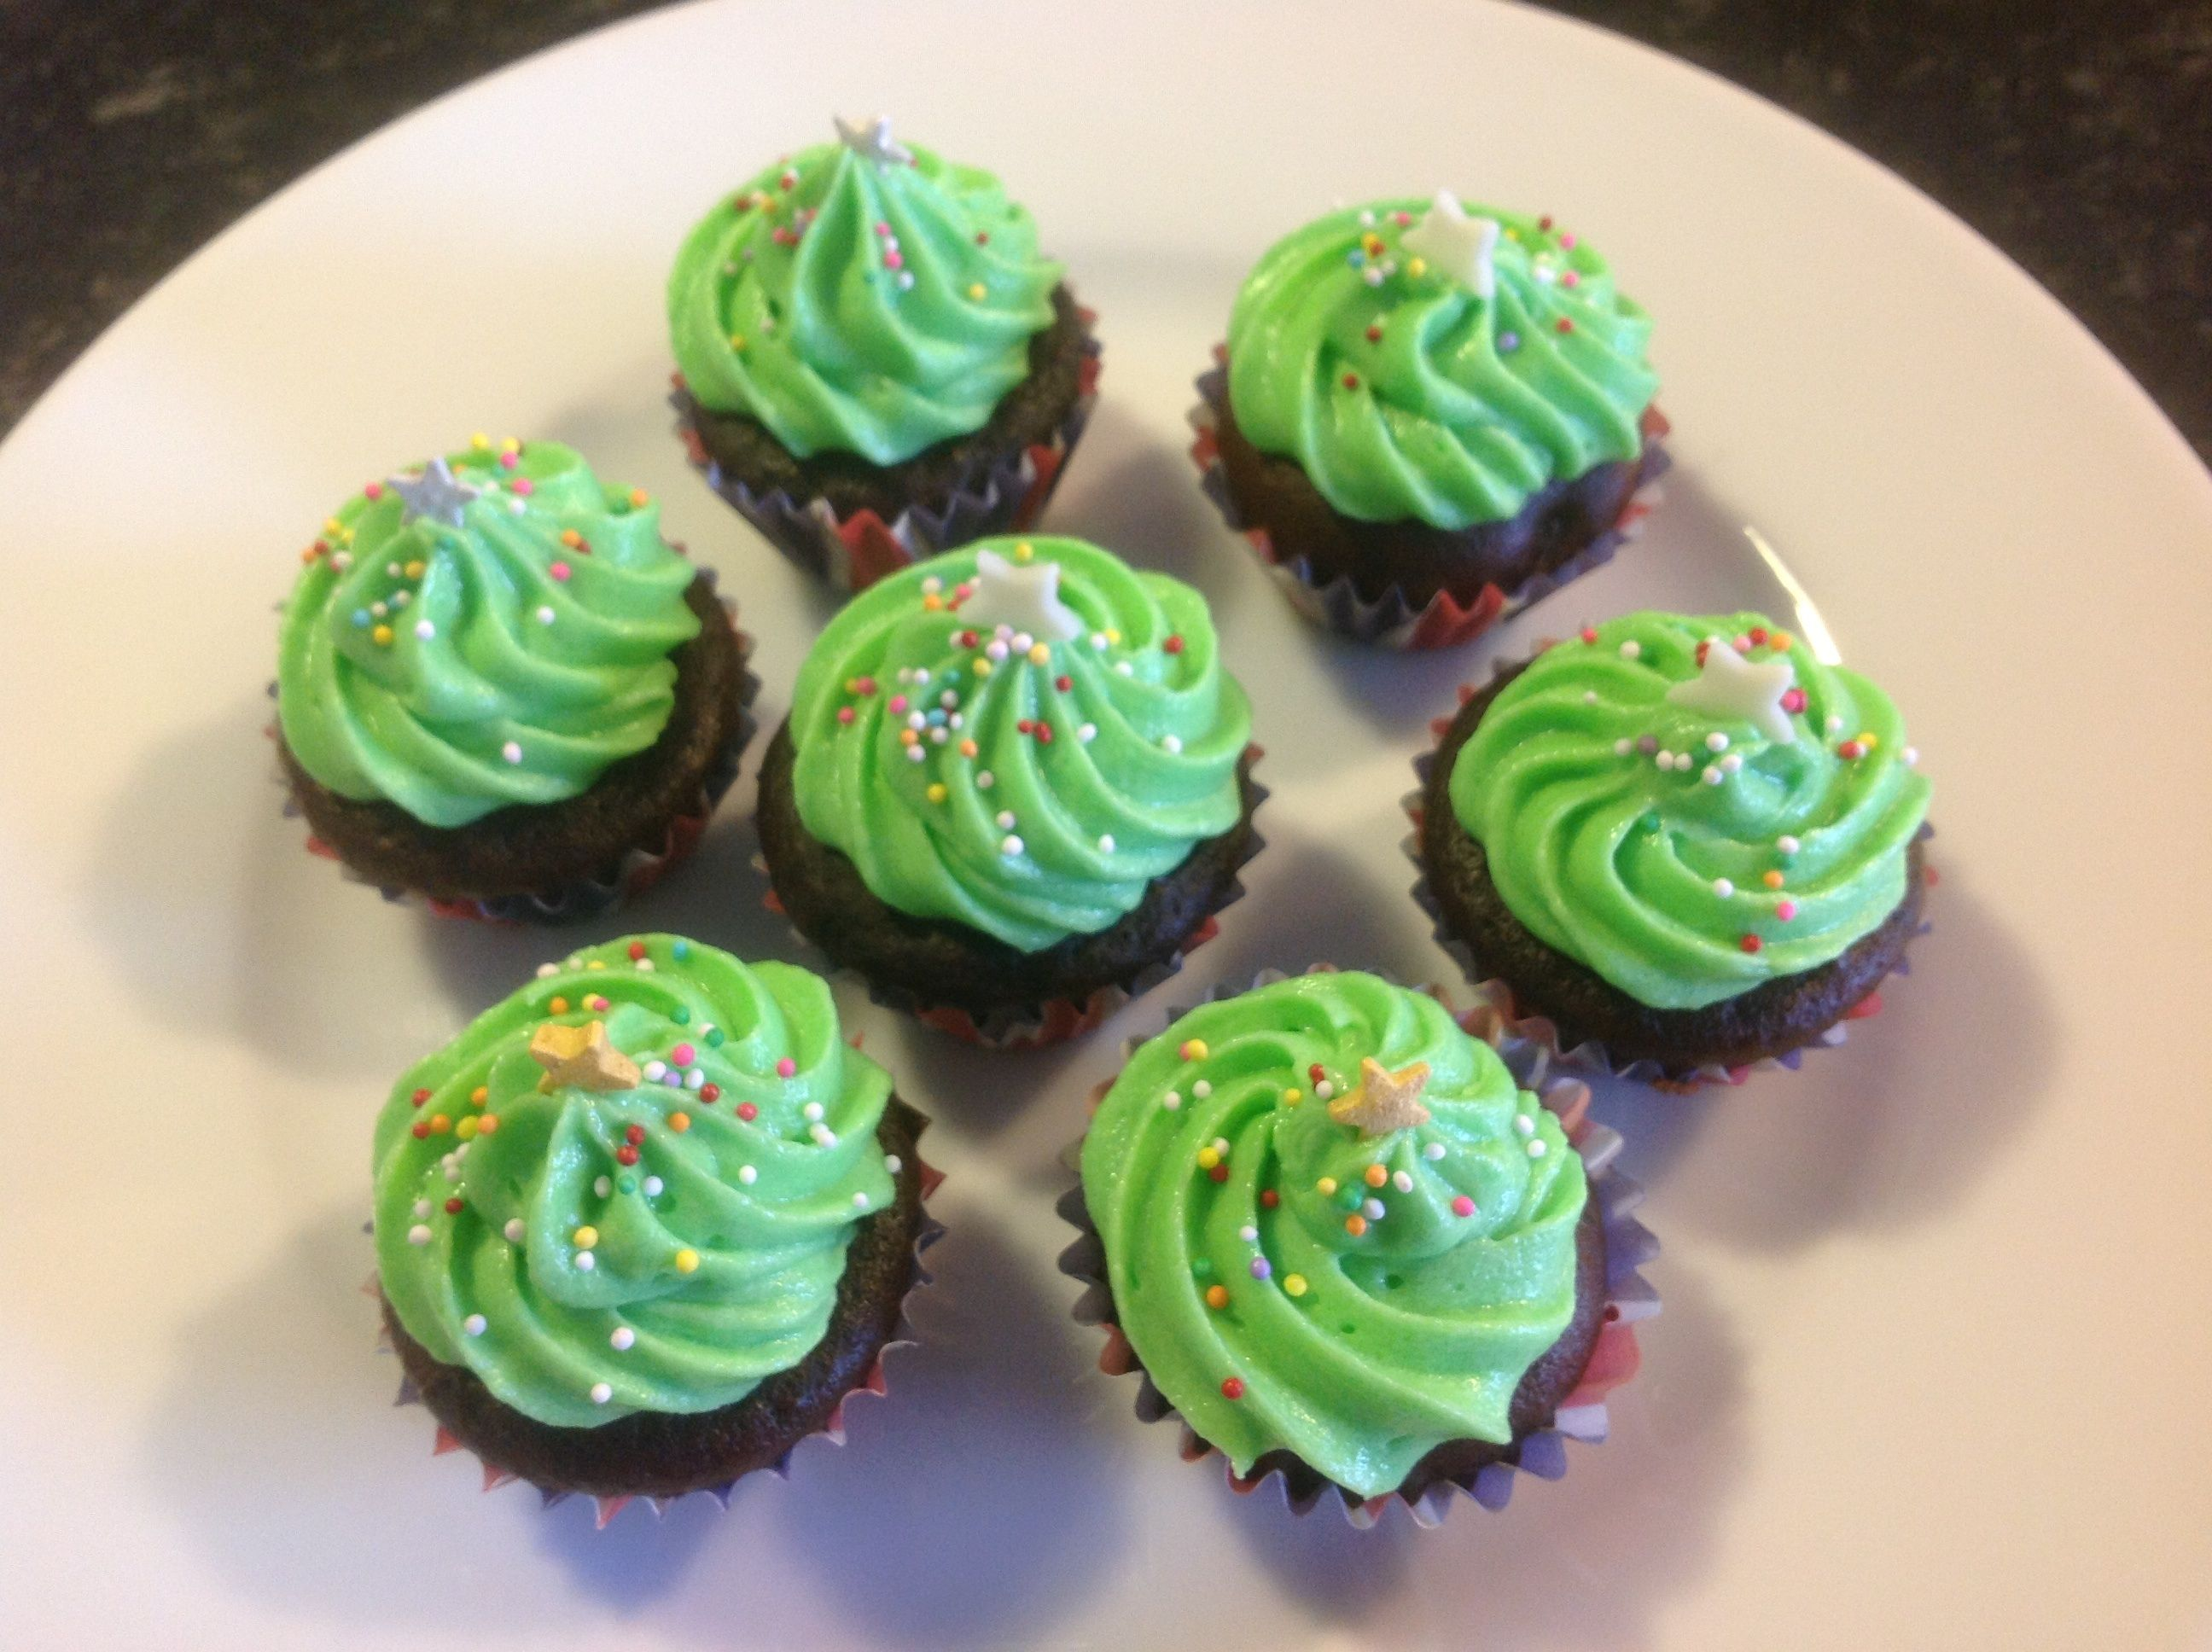 Mini muffins made into Christmas trees